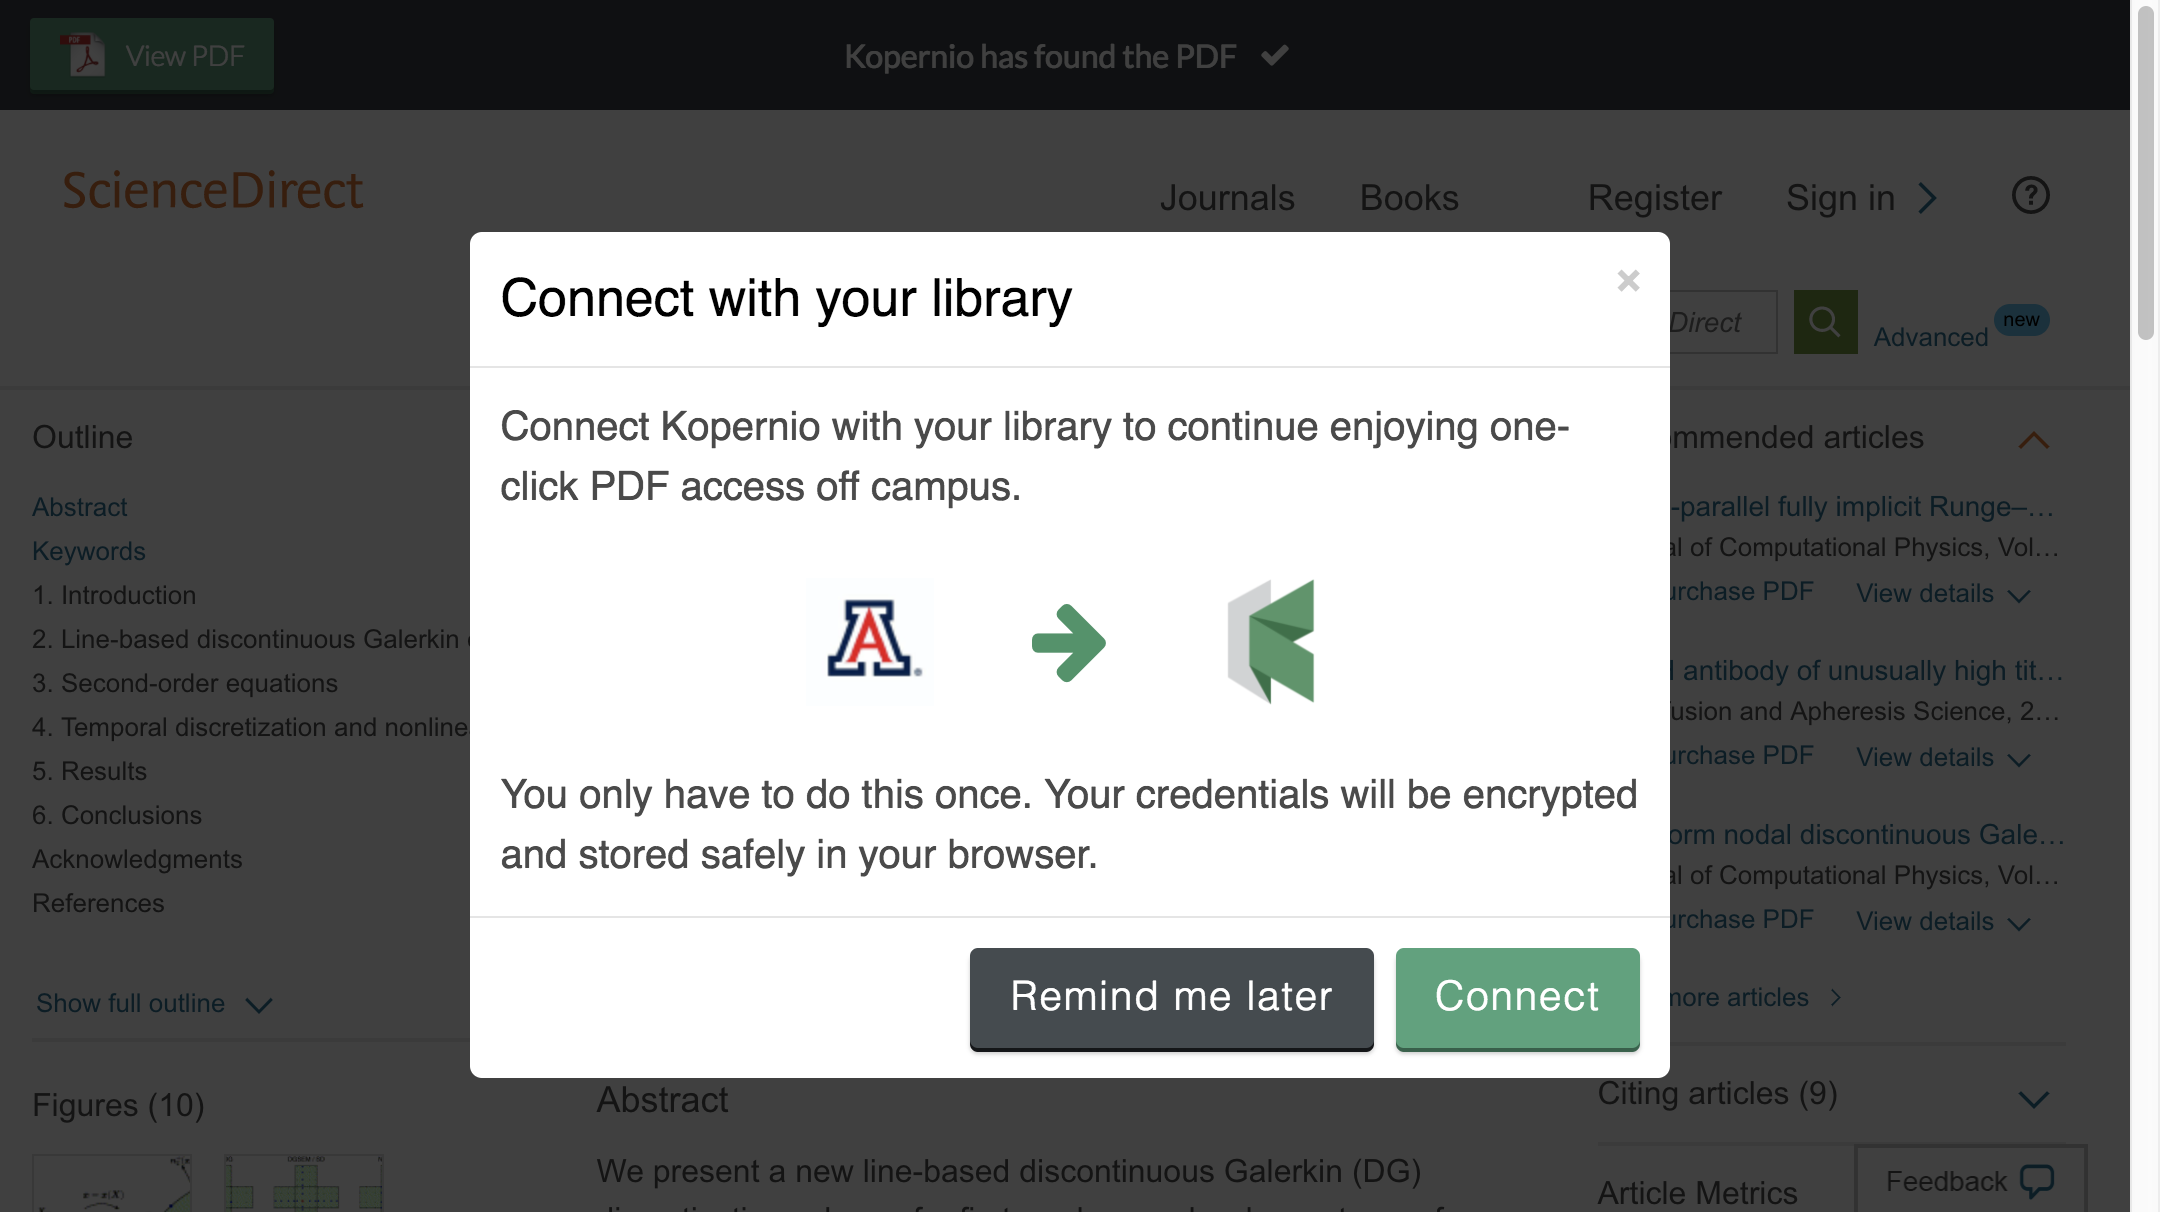 Connect to library prompt for off-campus access to University of Arizona e-resources.